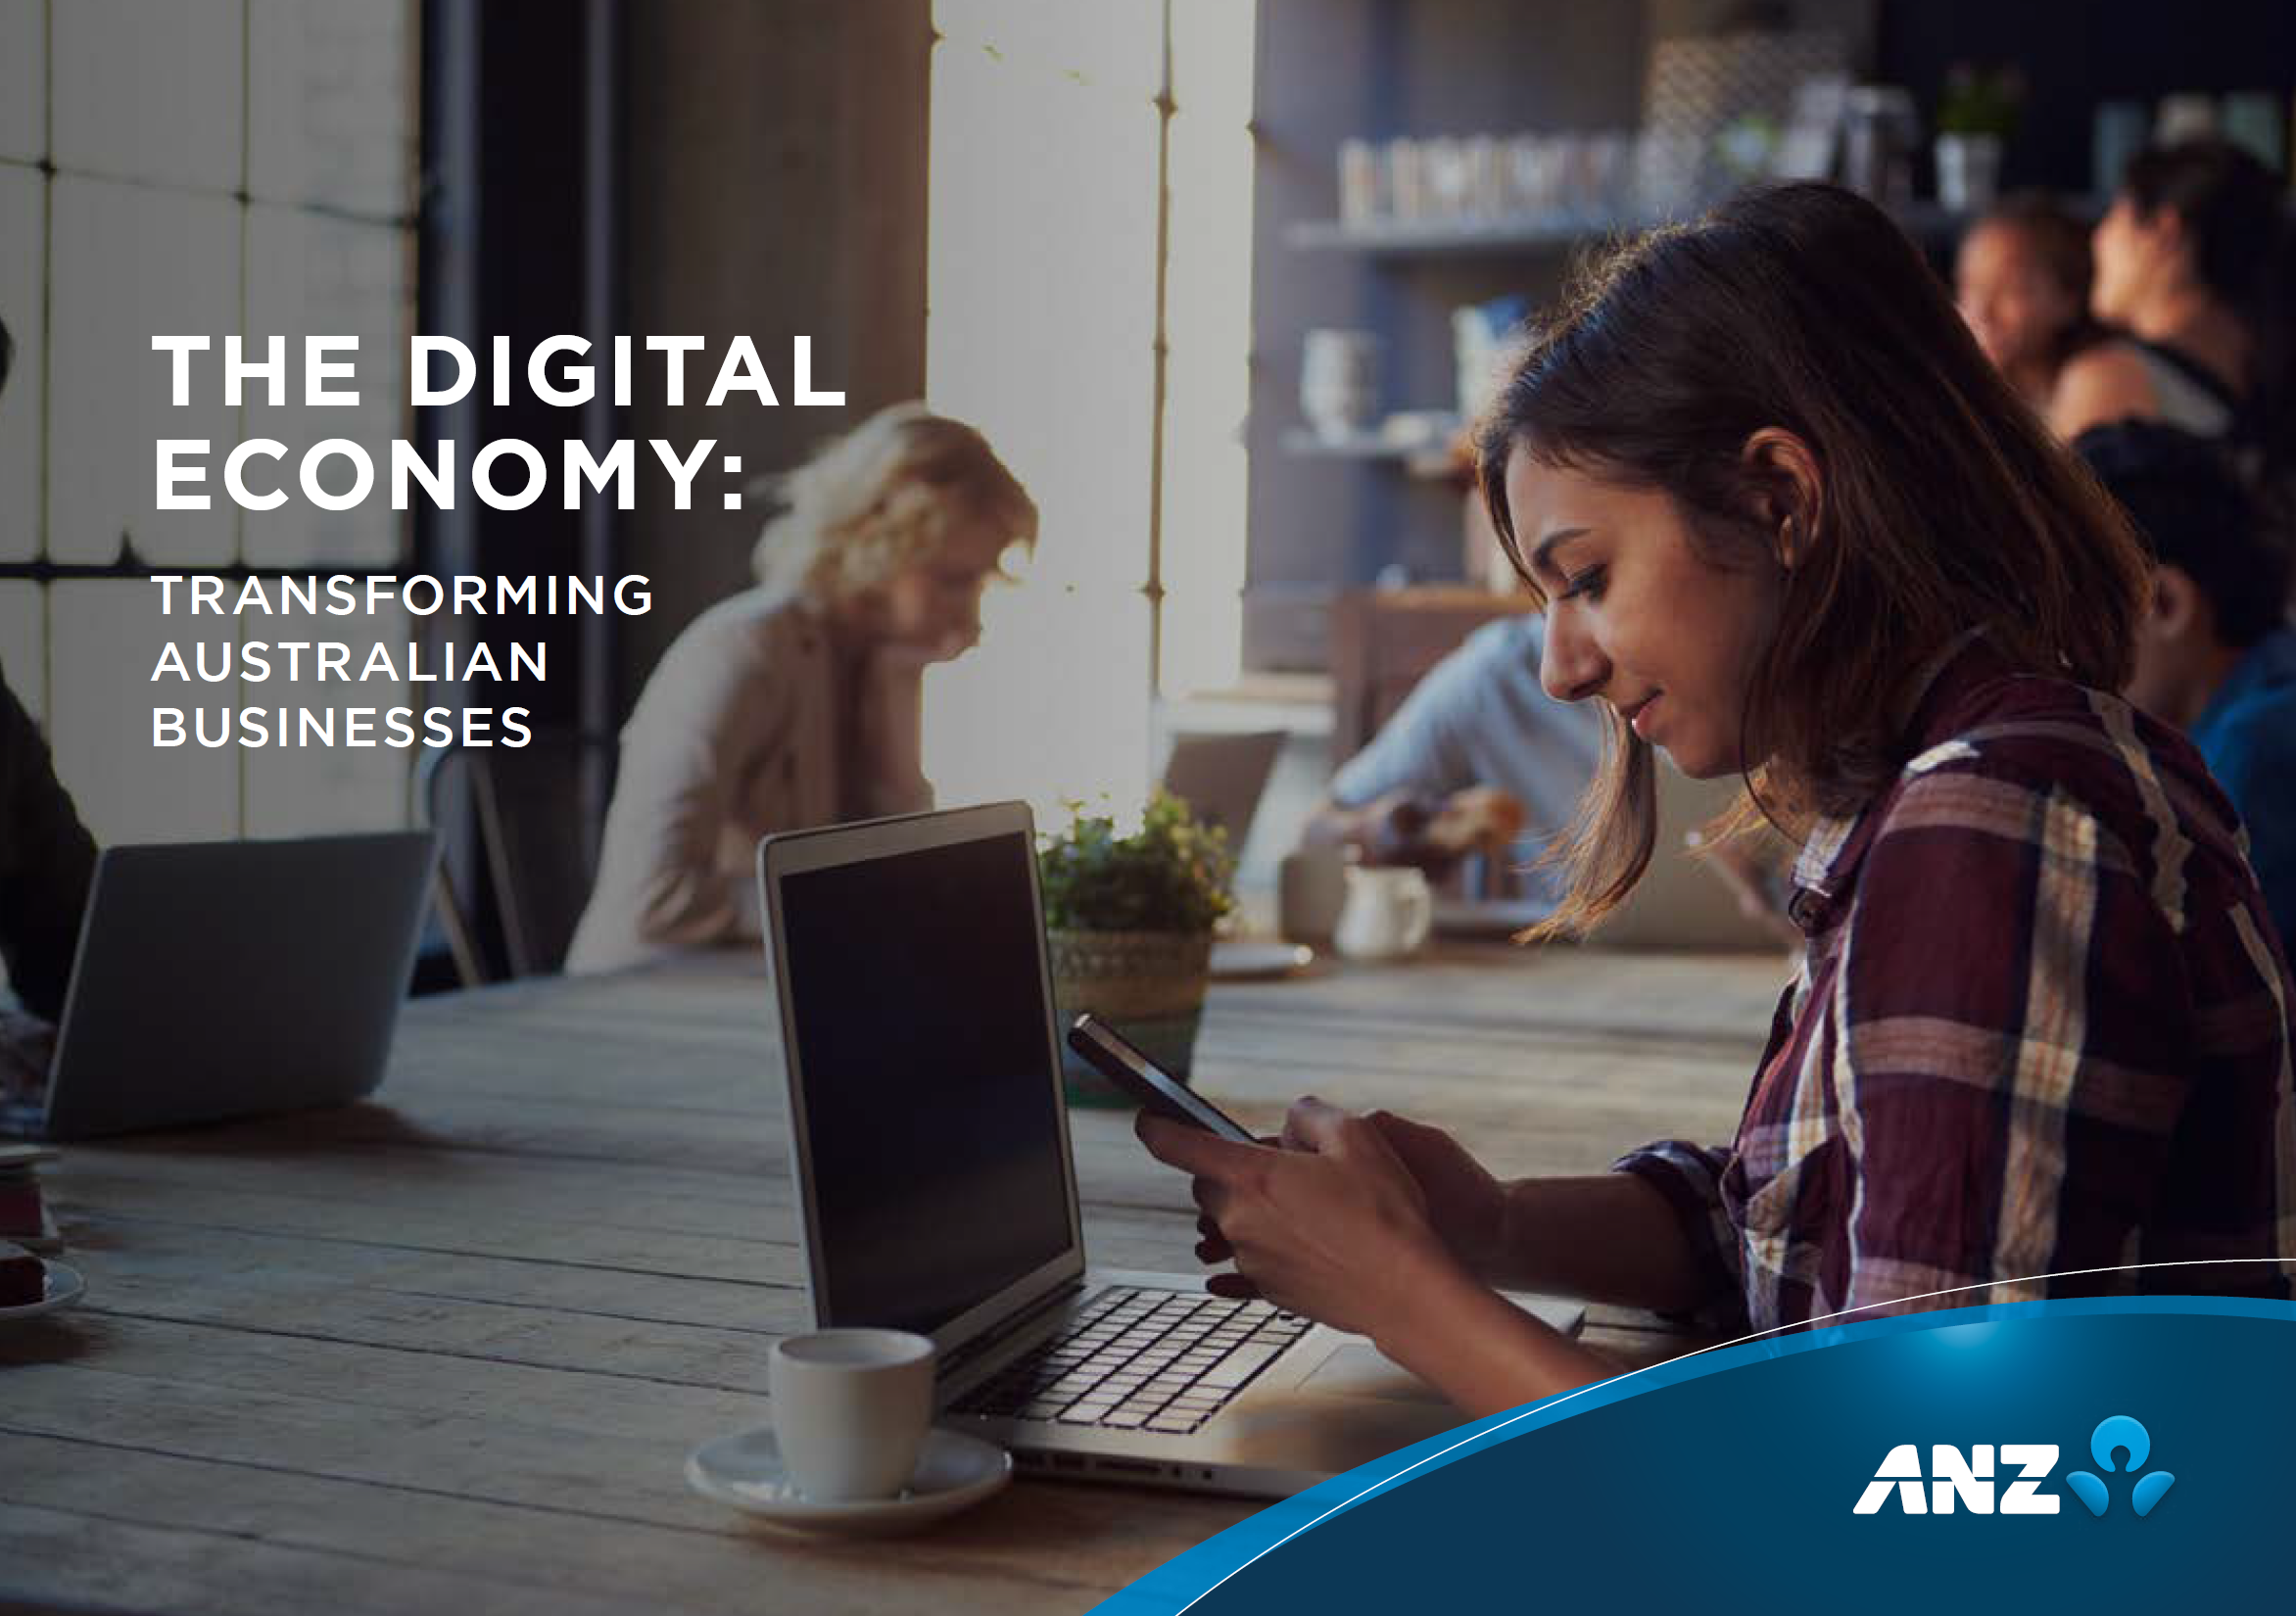 The Digital Economy - Transforming Australian Business